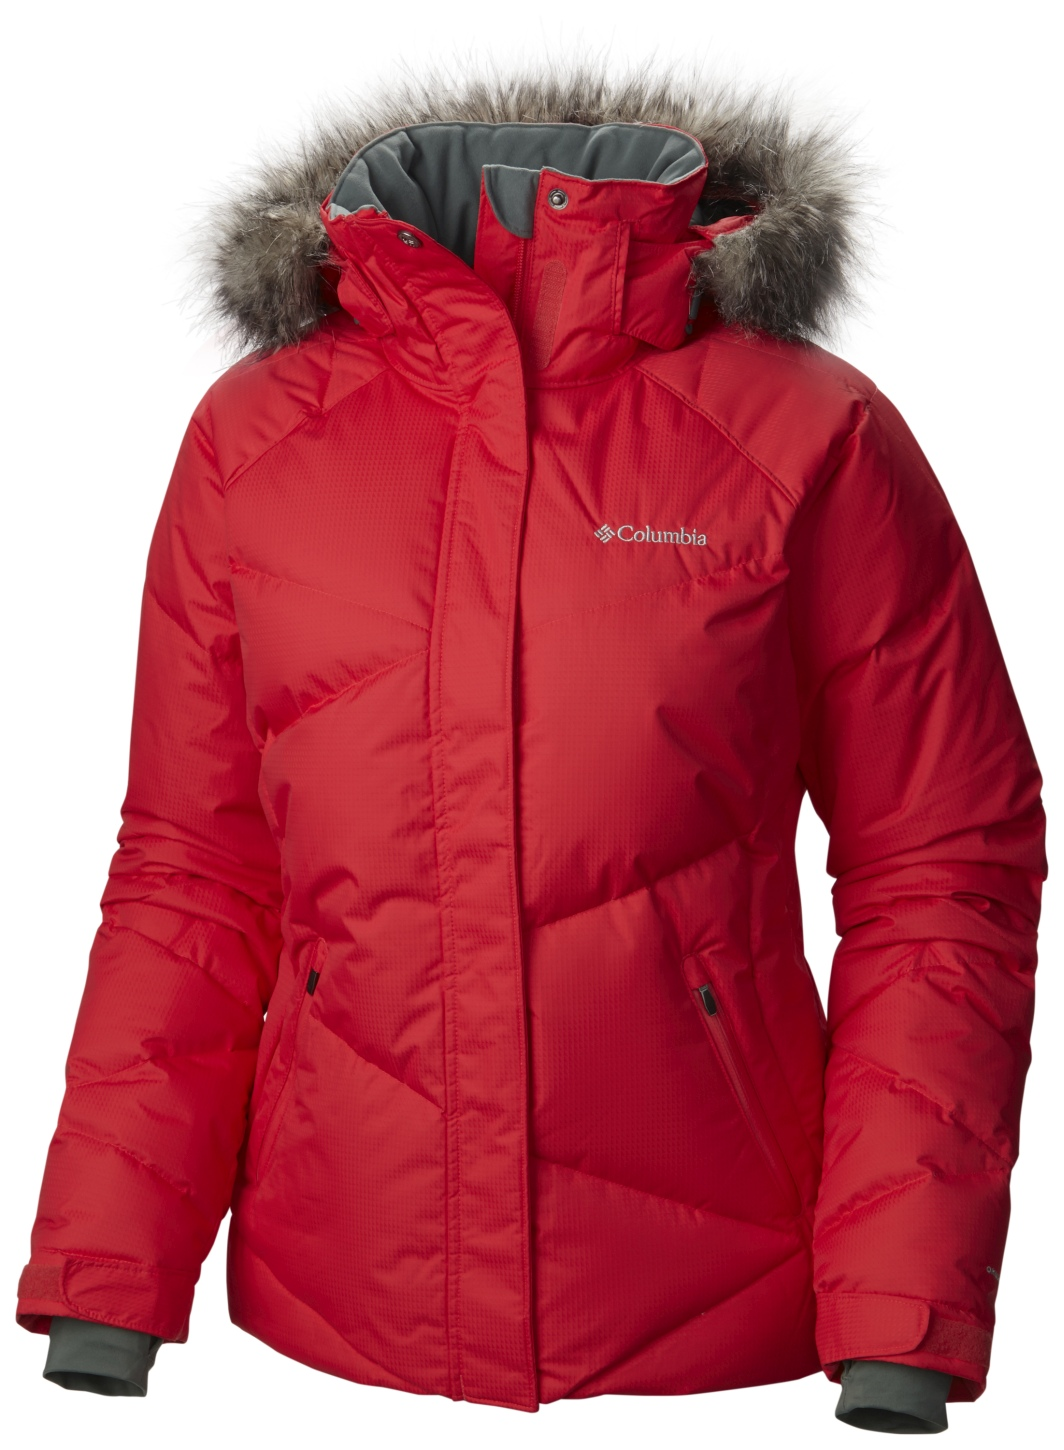 Columbia Lay 'D' Down Ski-Jacke für Damen Red Camellia-30